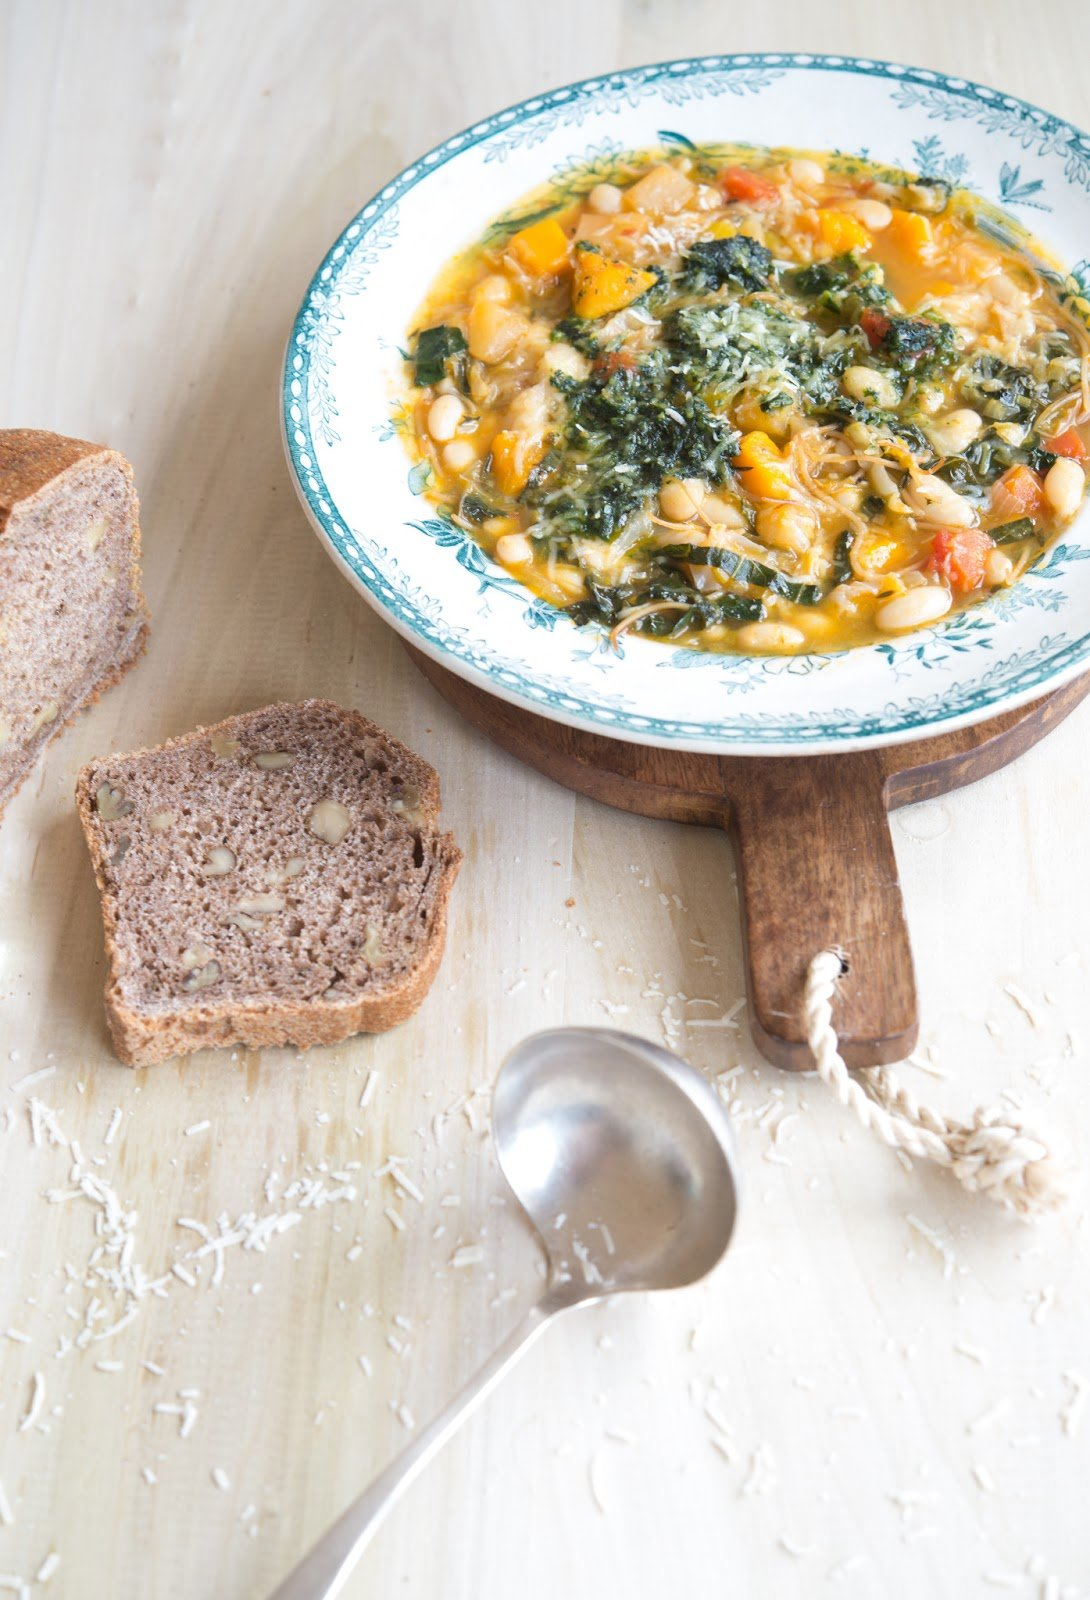 How To Make An Soupe Au Pistou {French Vegetable Soup With Basil Paste} | WholeLifestyleNutrition.com